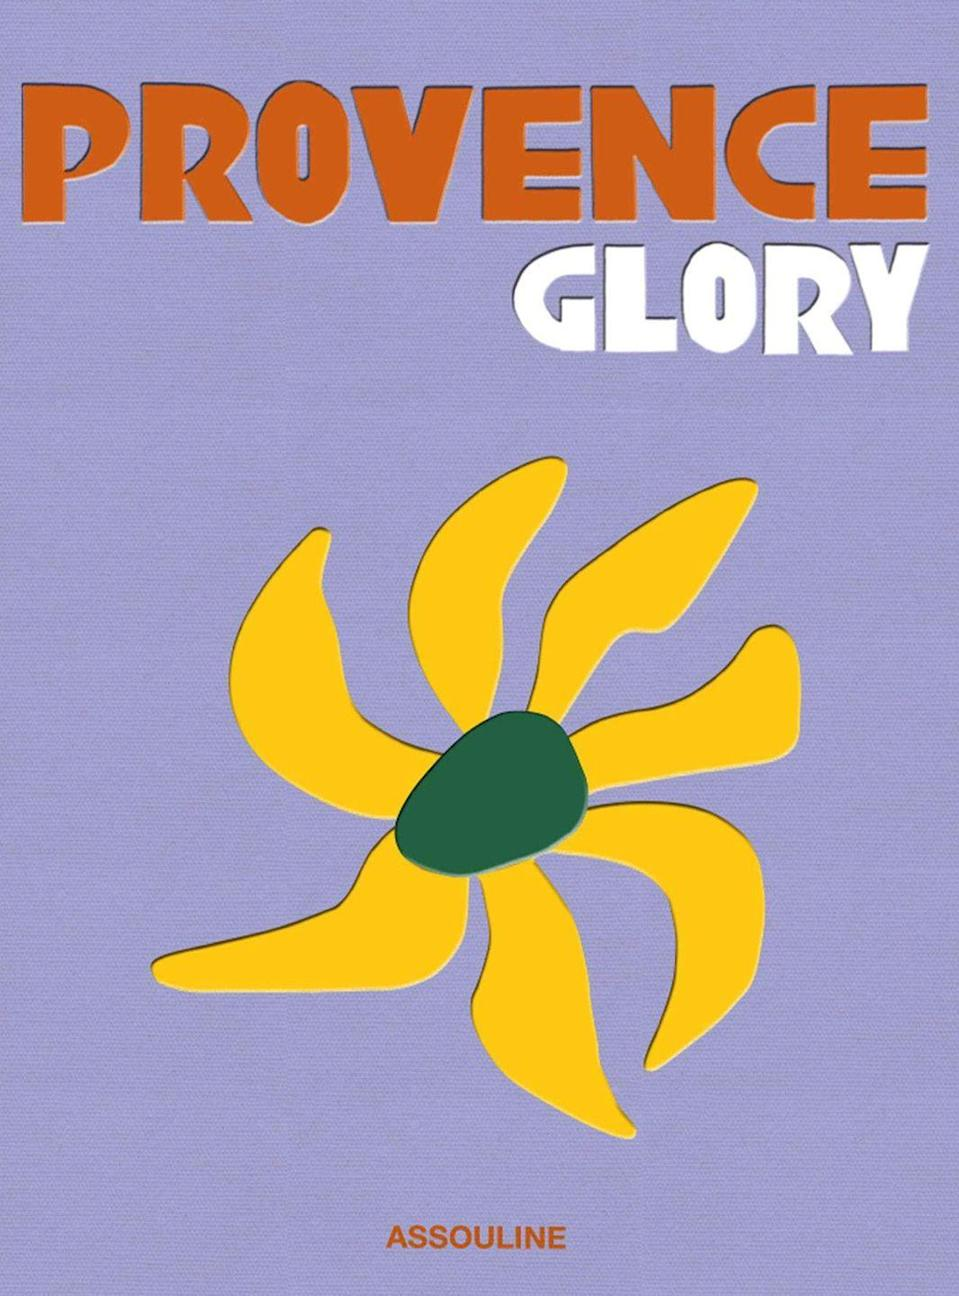 """<p><a class=""""link rapid-noclick-resp"""" href=""""https://eu.assouline.com/products/provence-glory"""" rel=""""nofollow noopener"""" target=""""_blank"""" data-ylk=""""slk:SHOP NOW"""">SHOP NOW</a></p><p>We might not be able to reach our favourite travel destinations right now, but we can still read about them and pore over their beauty through Assouline's well-designed book series. Provence Glory, among the latest to the franchise, explores the sun-drench, lavender-scented region in the South of France, creating an evocative portrait that will prove respite on grey UK days.</p><p>Provence Glory, £95, Assouline</p>"""